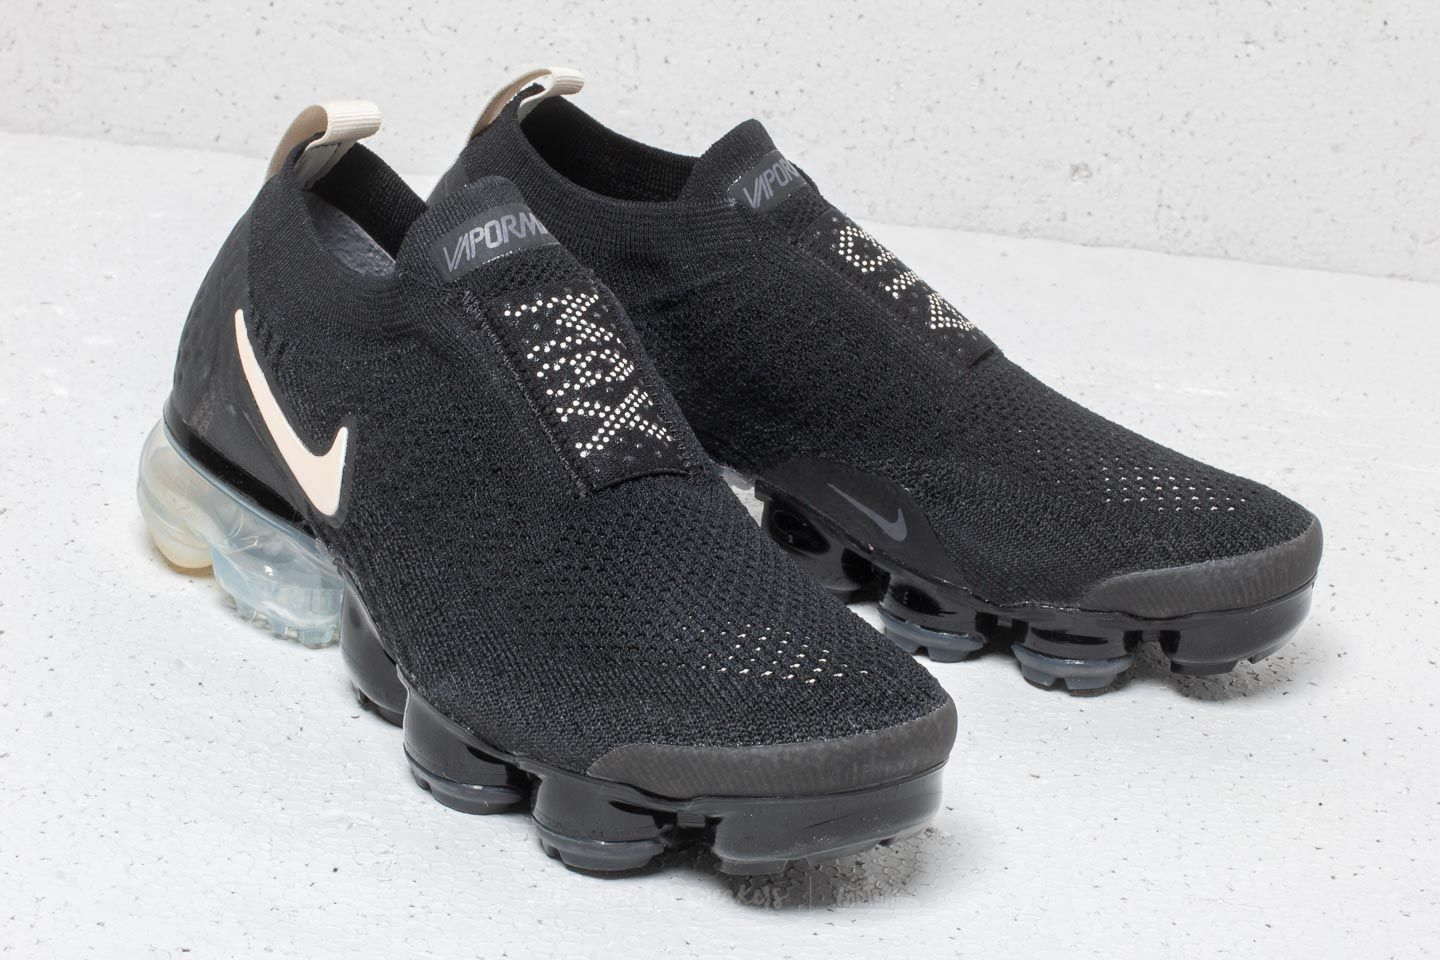 86725cb6ab1 Nike Wmns Air Vapormax Flyknit Moc 2 Black  Light Cream-White za skvělou  cenu